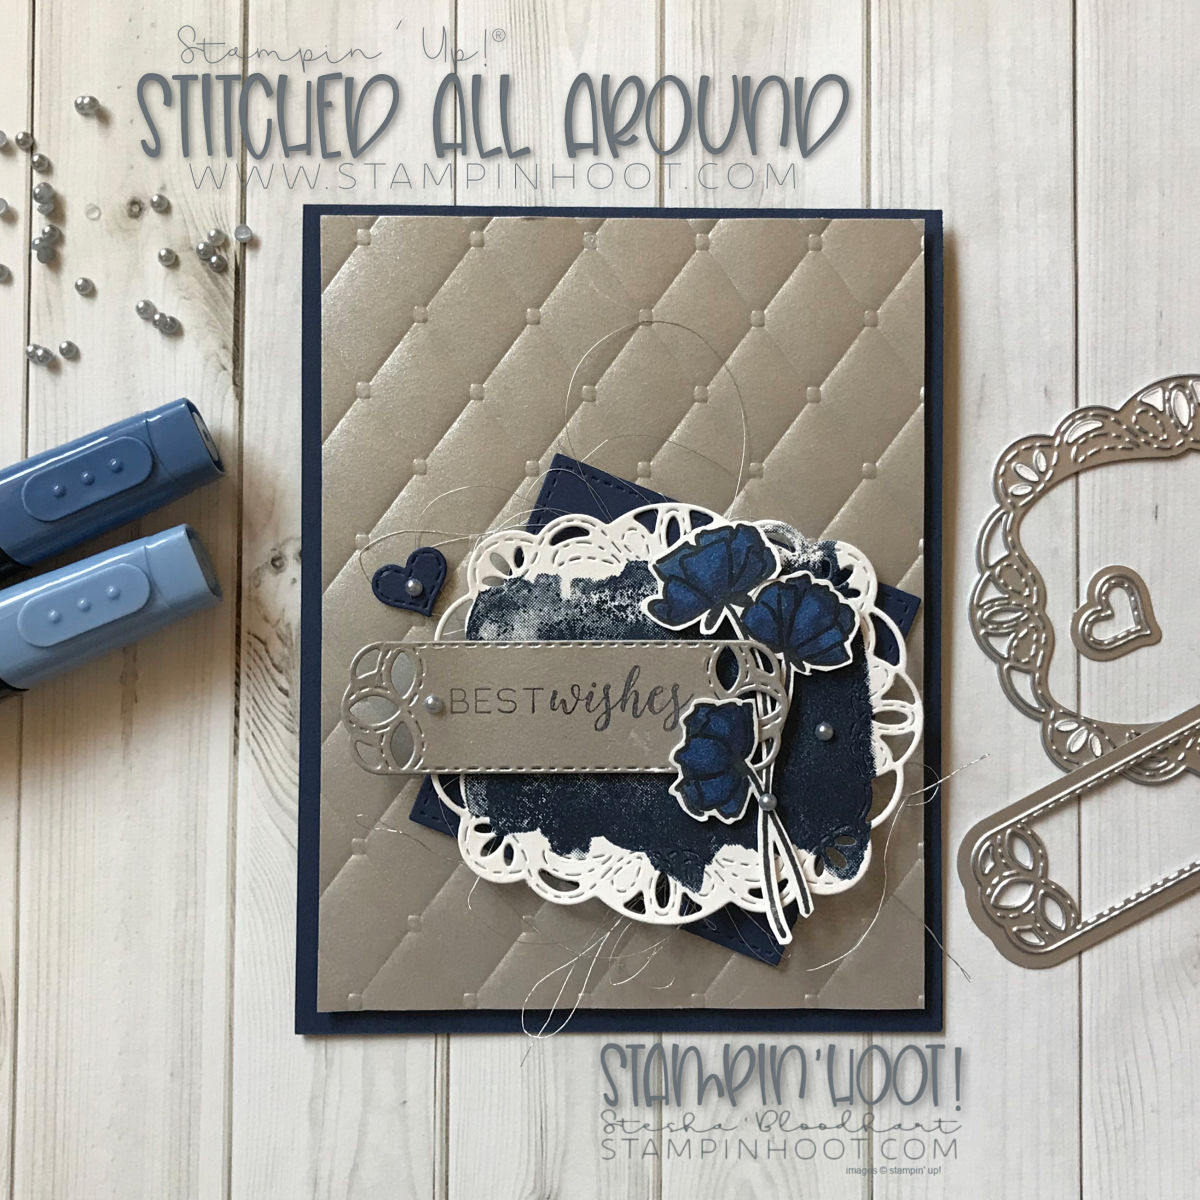 Stitched All Around Bundle by Stampin' Up! Best Wishes Wedding Card by Stesha Bloodhart Stampin' Hoot! for #GDP156 Case the Designer